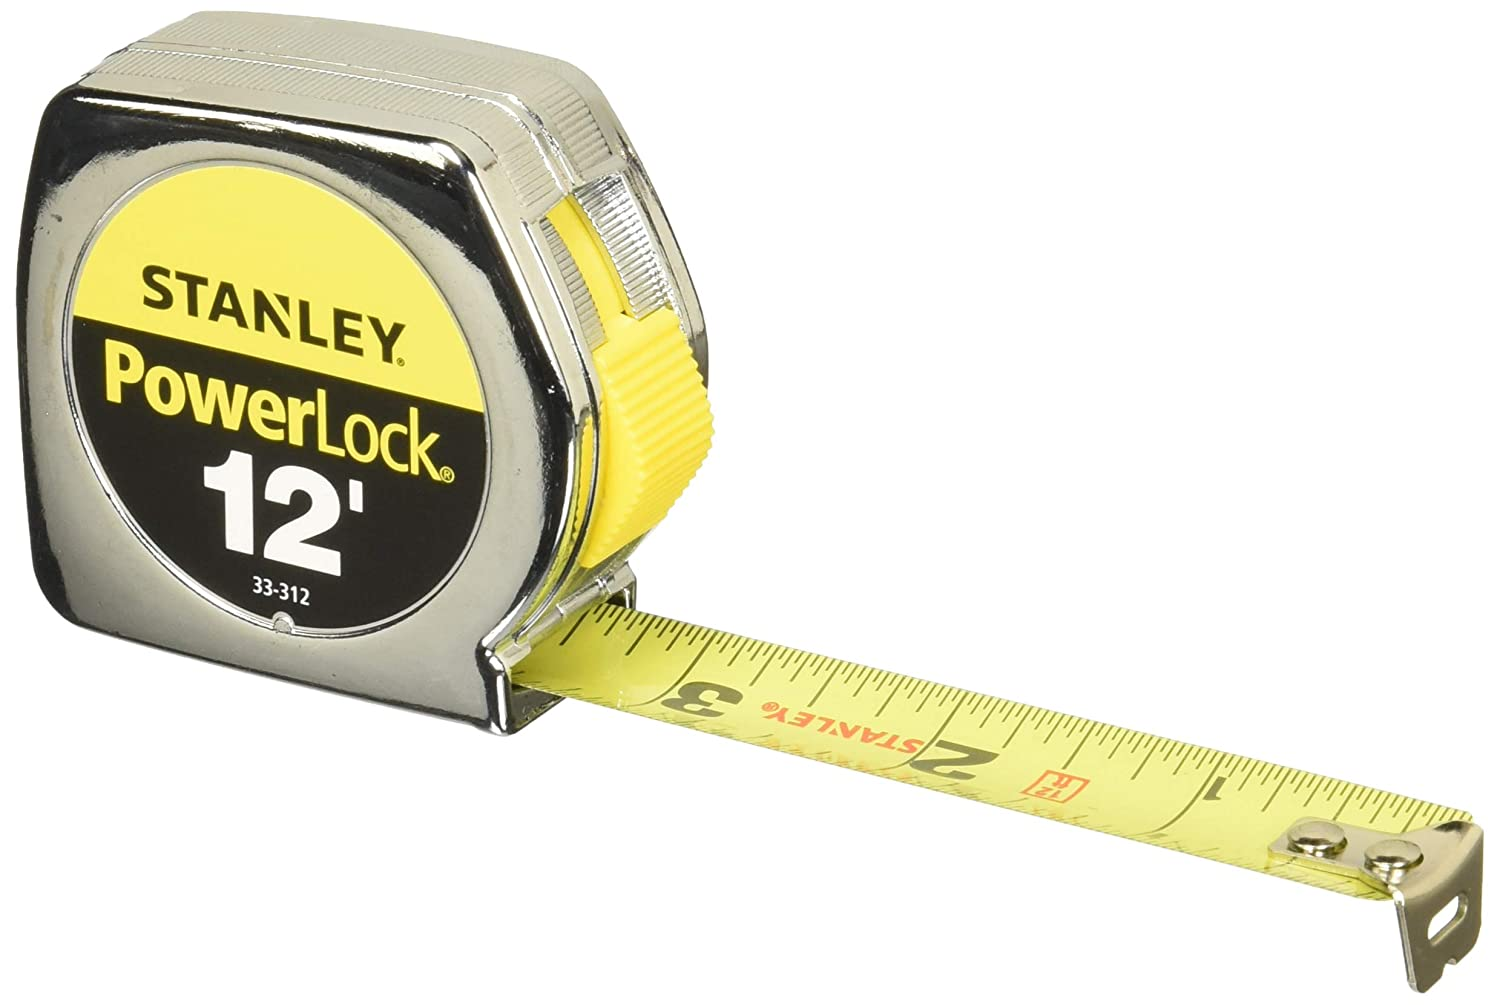 Stanley 33 312 12 Powerlock Tape Rule